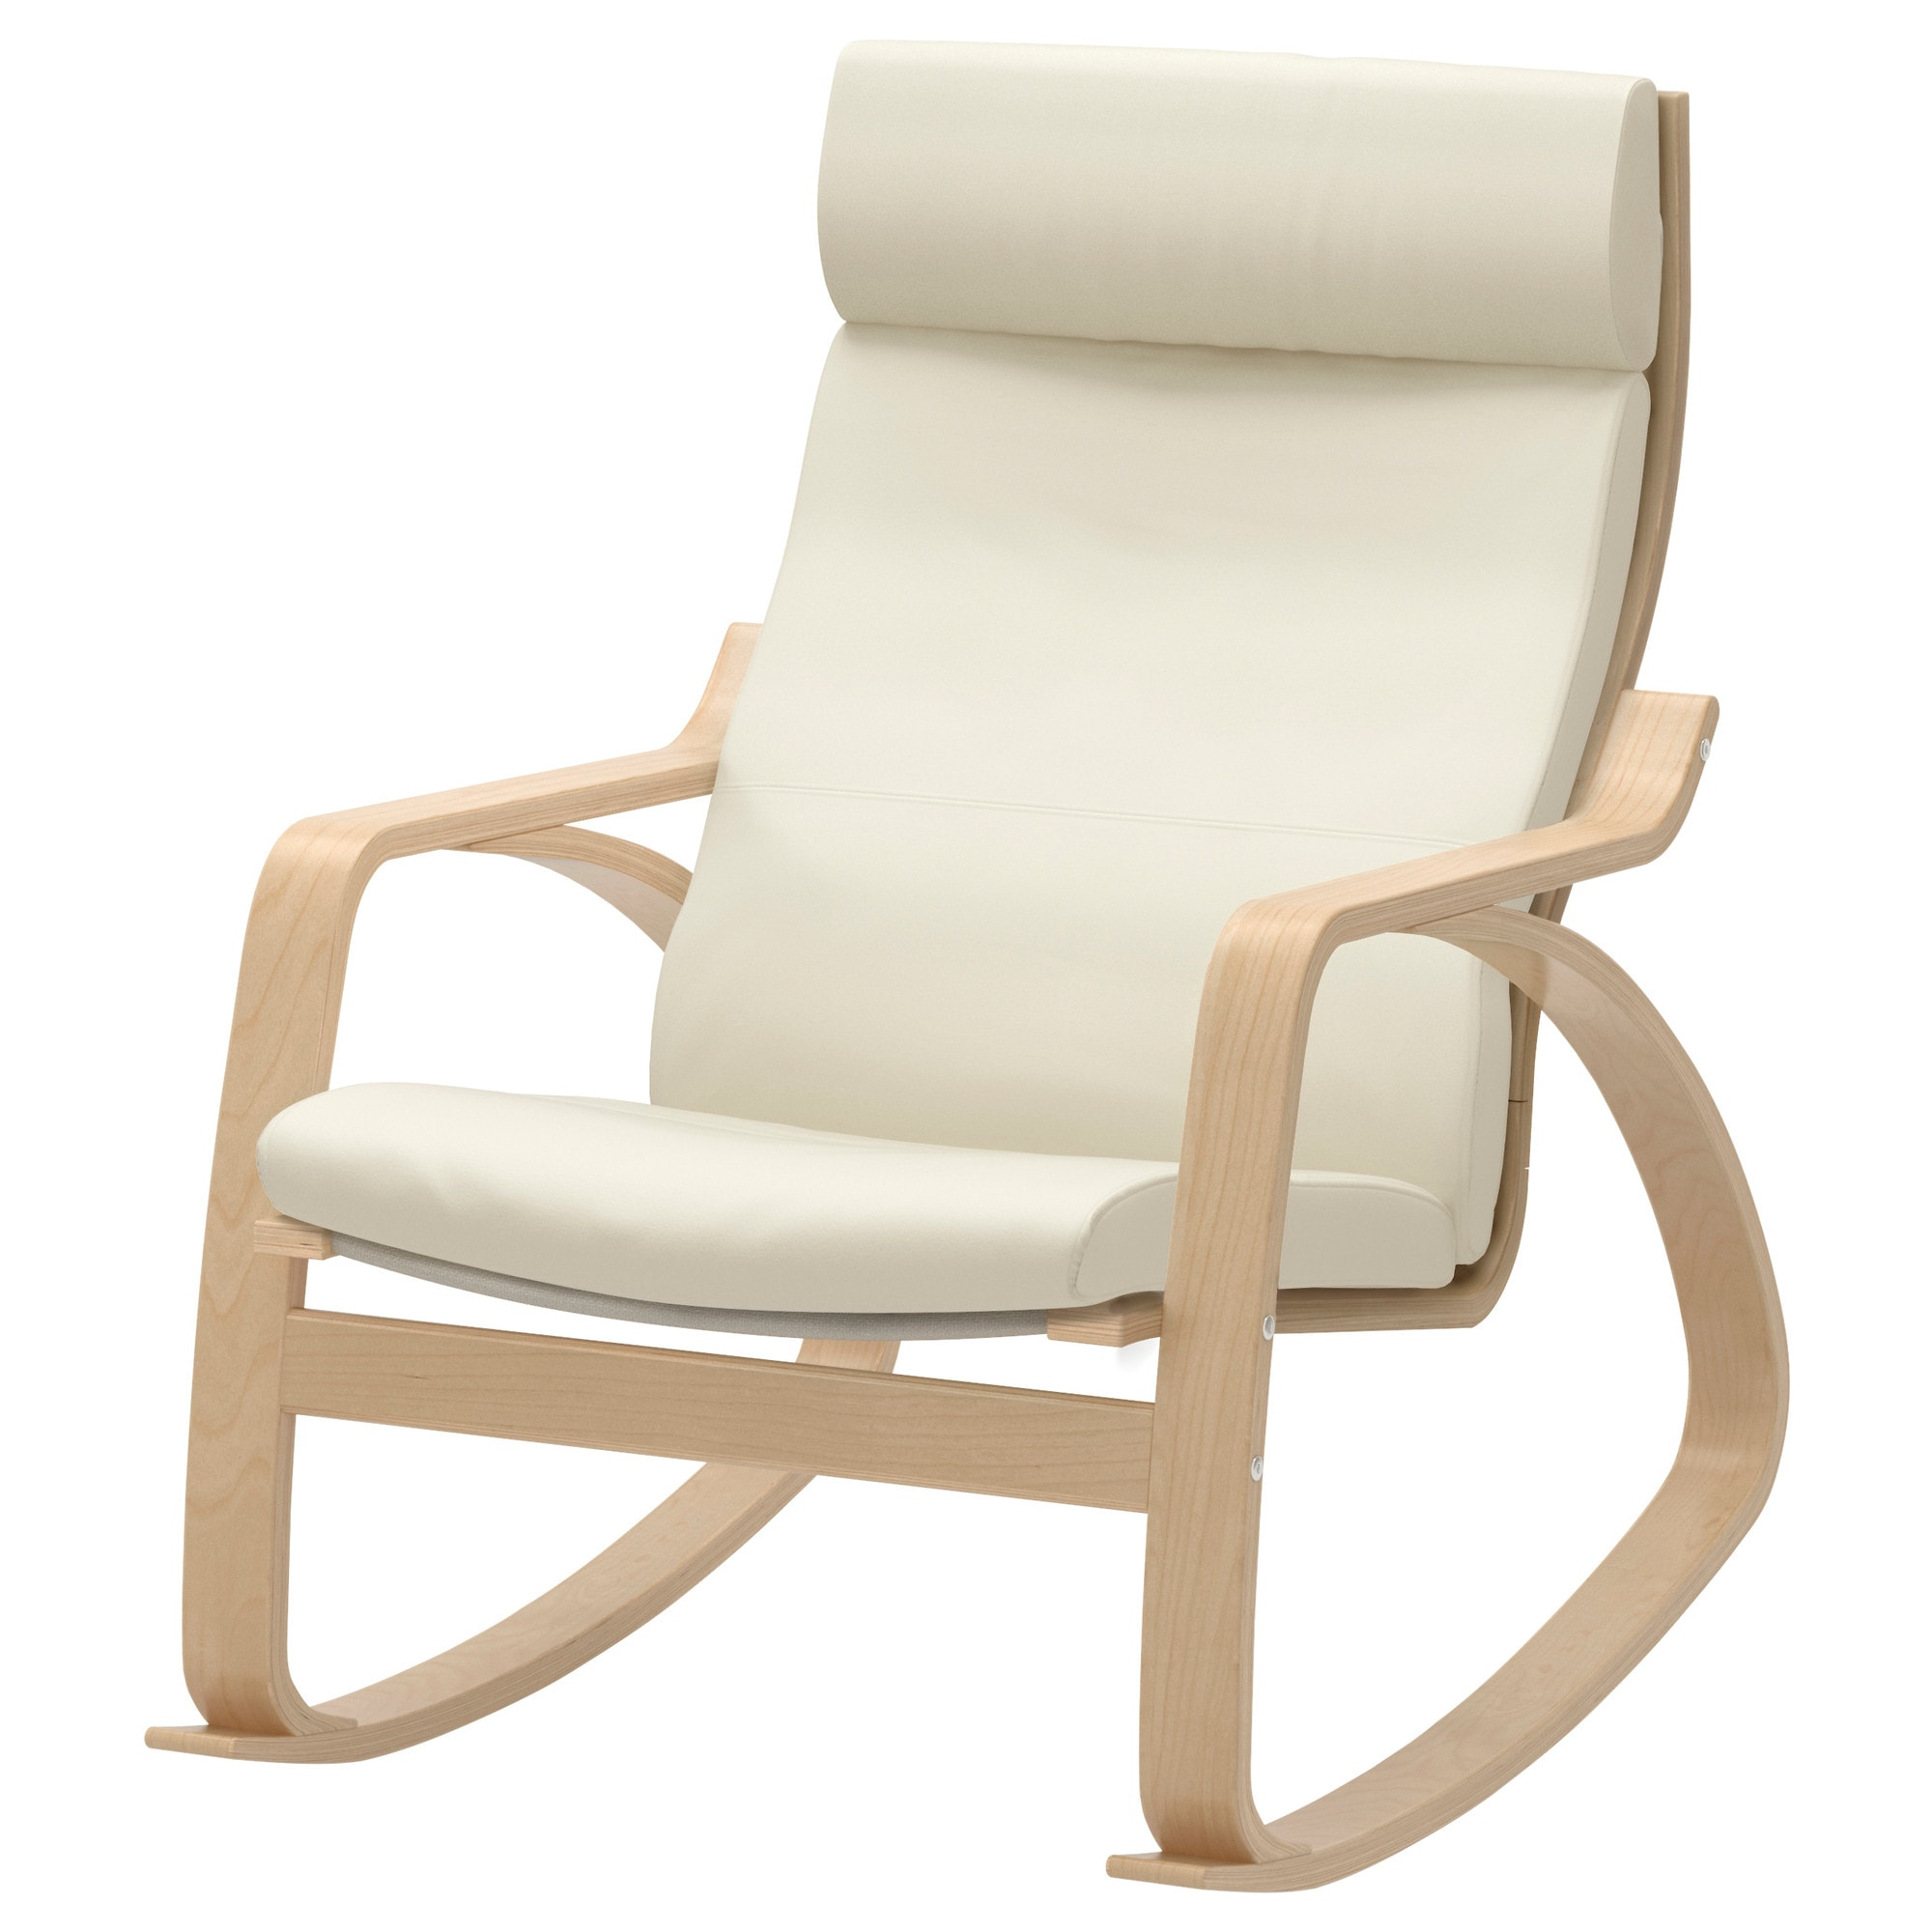 Ikea lillberg rocking chair - Ikea Lillberg Rocking Chair 9